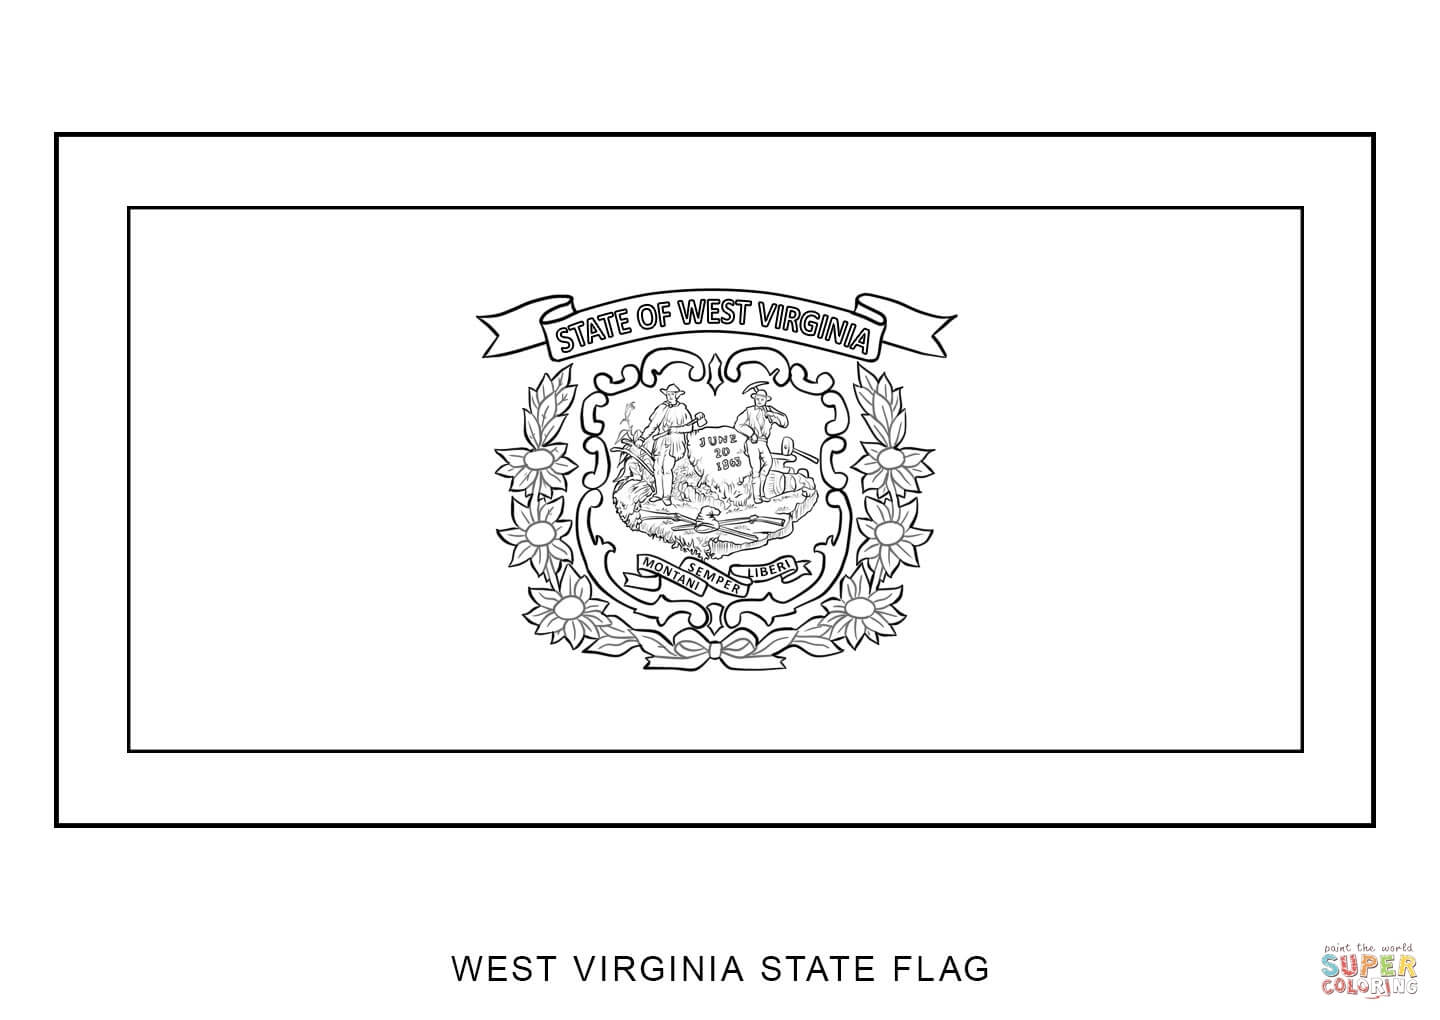 virginia state flag coloring page west virginia state flag coloring page free printable flag state page coloring virginia